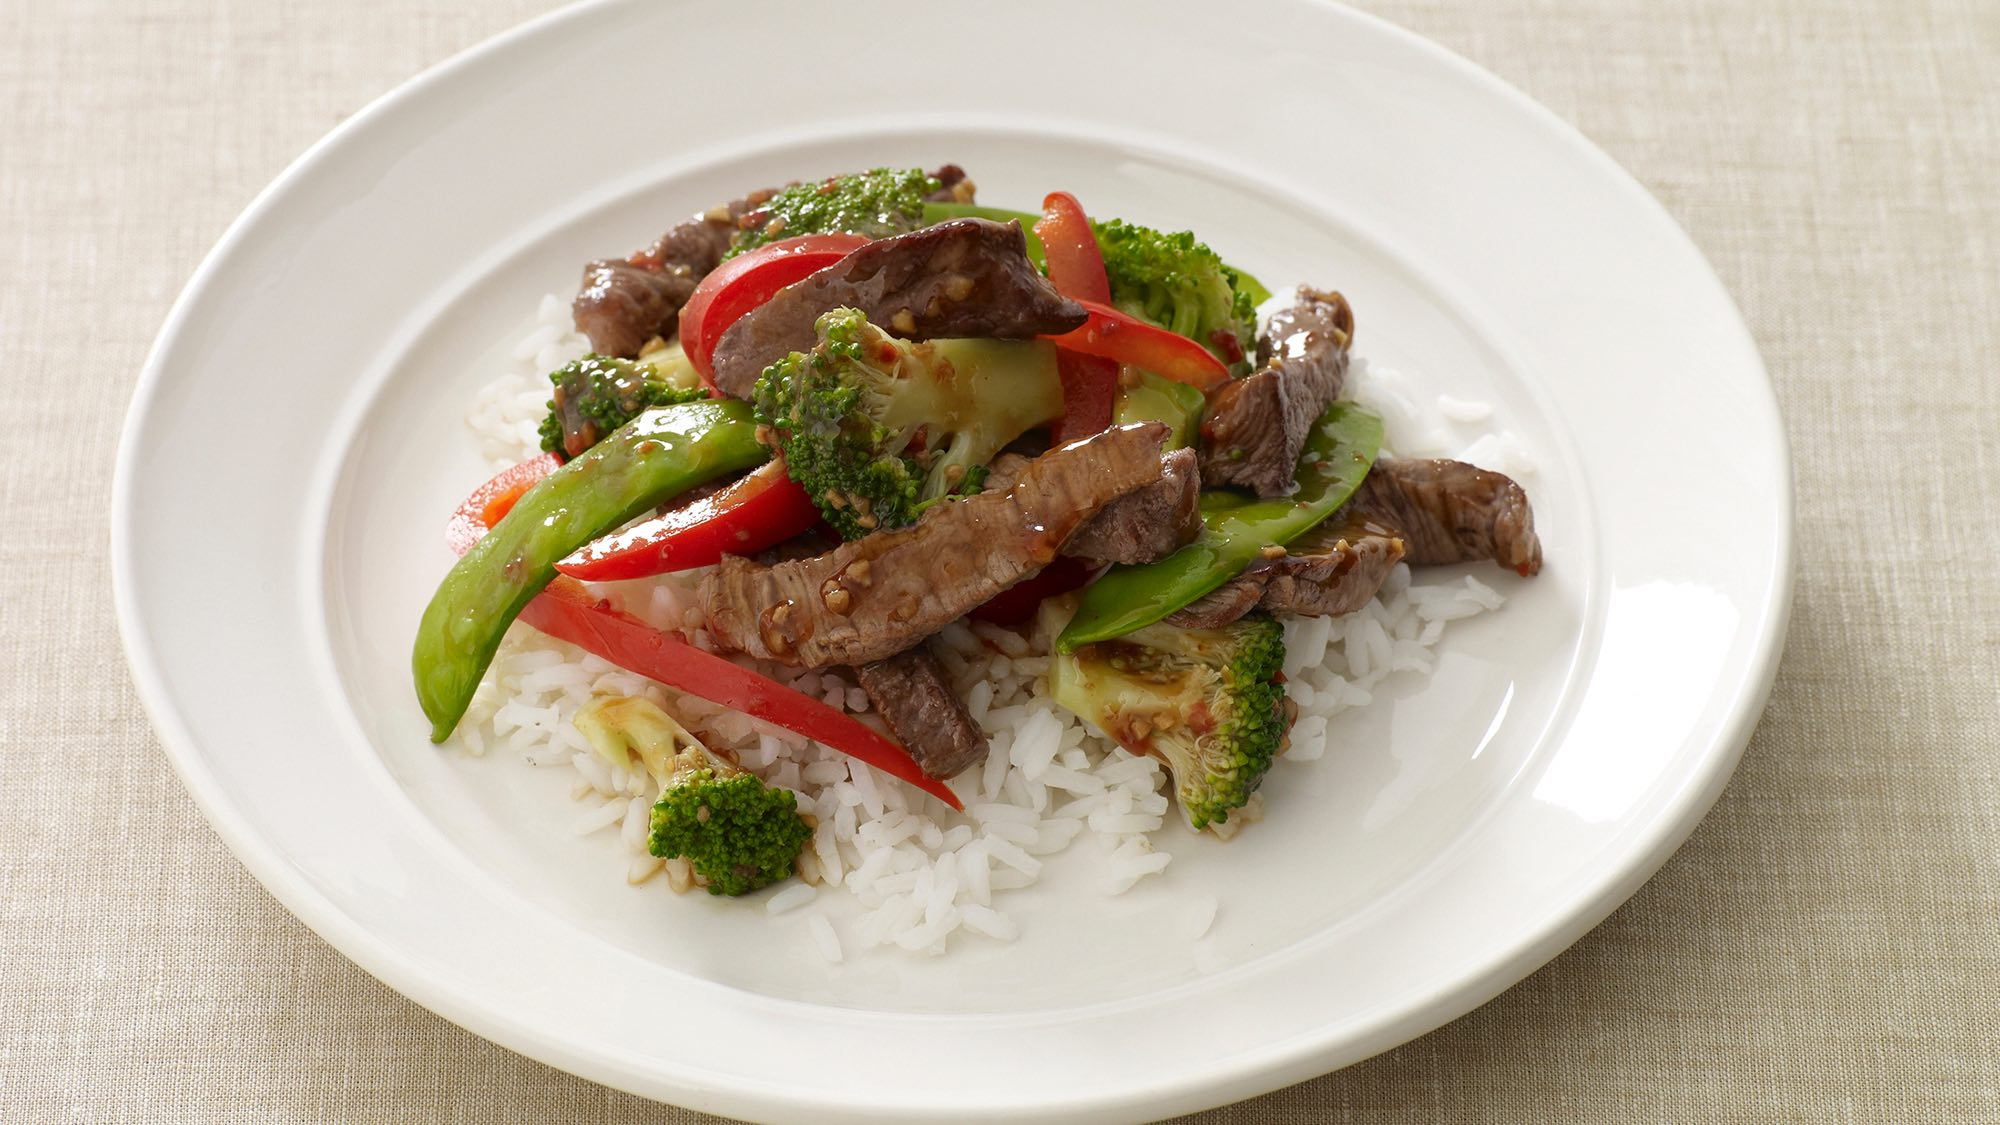 roasted-garlic-beef-and-vegetable-stir-fry.jpg